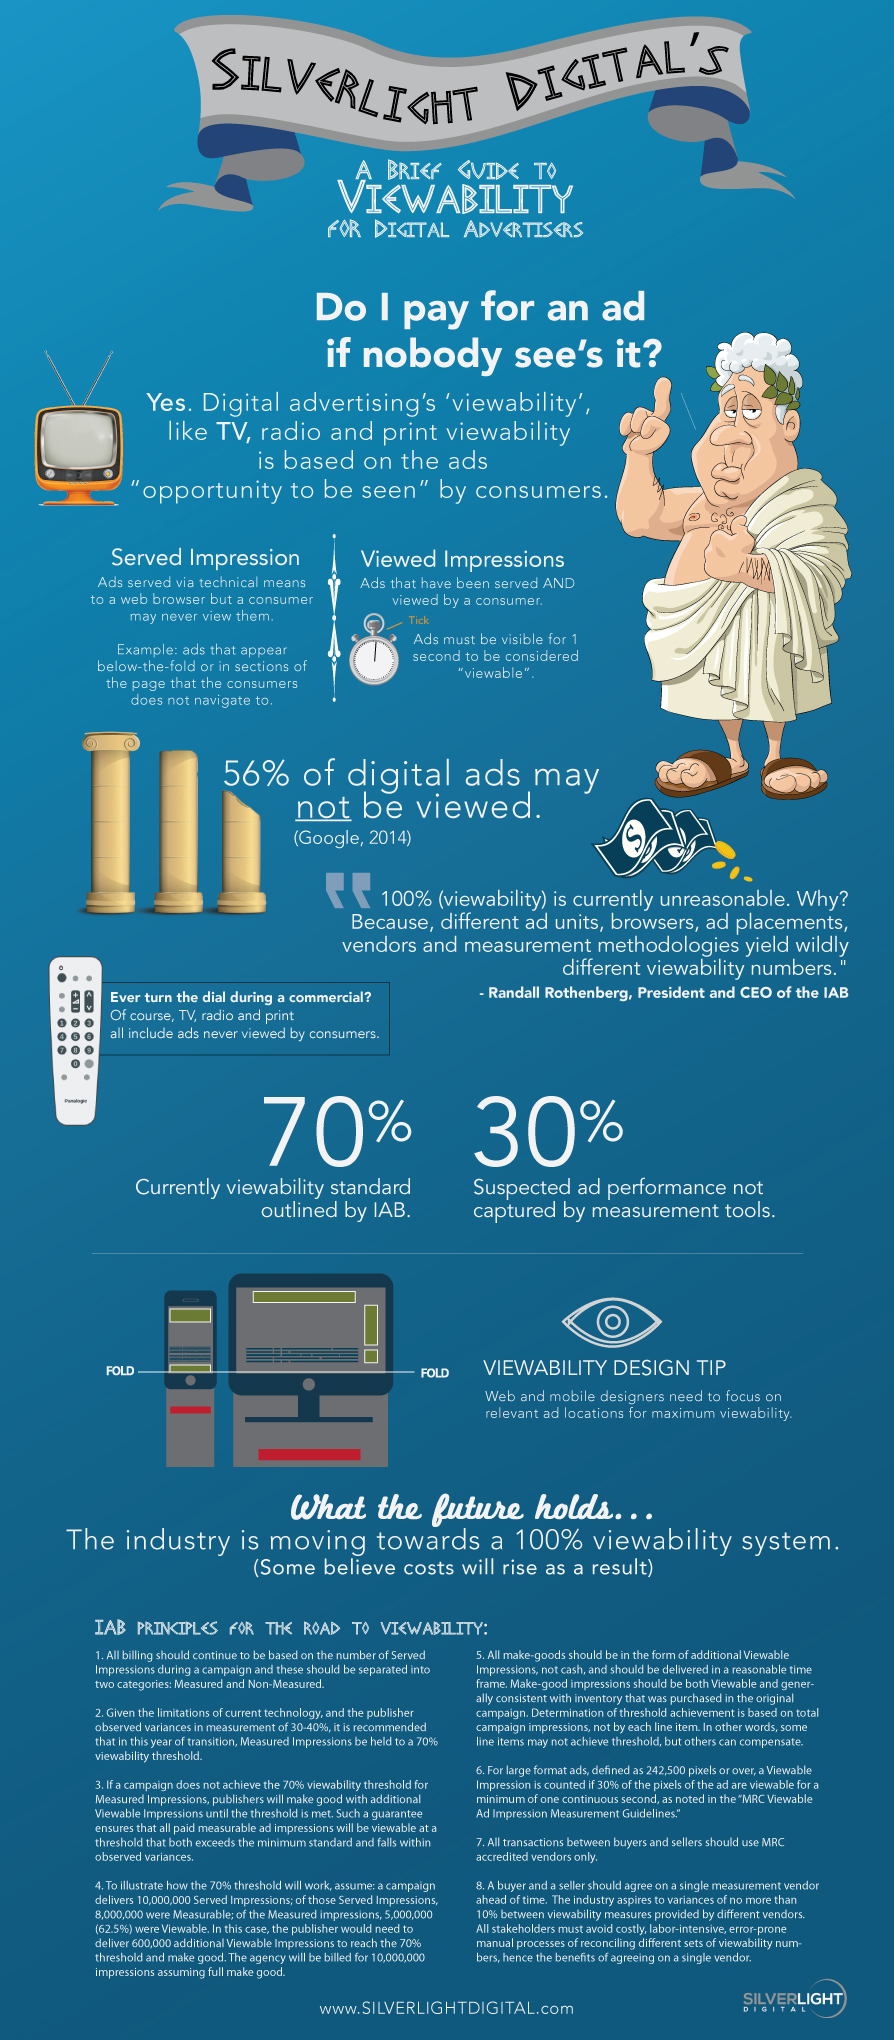 viewability-info-graphic-SILVERLIGHT-DIGITAL